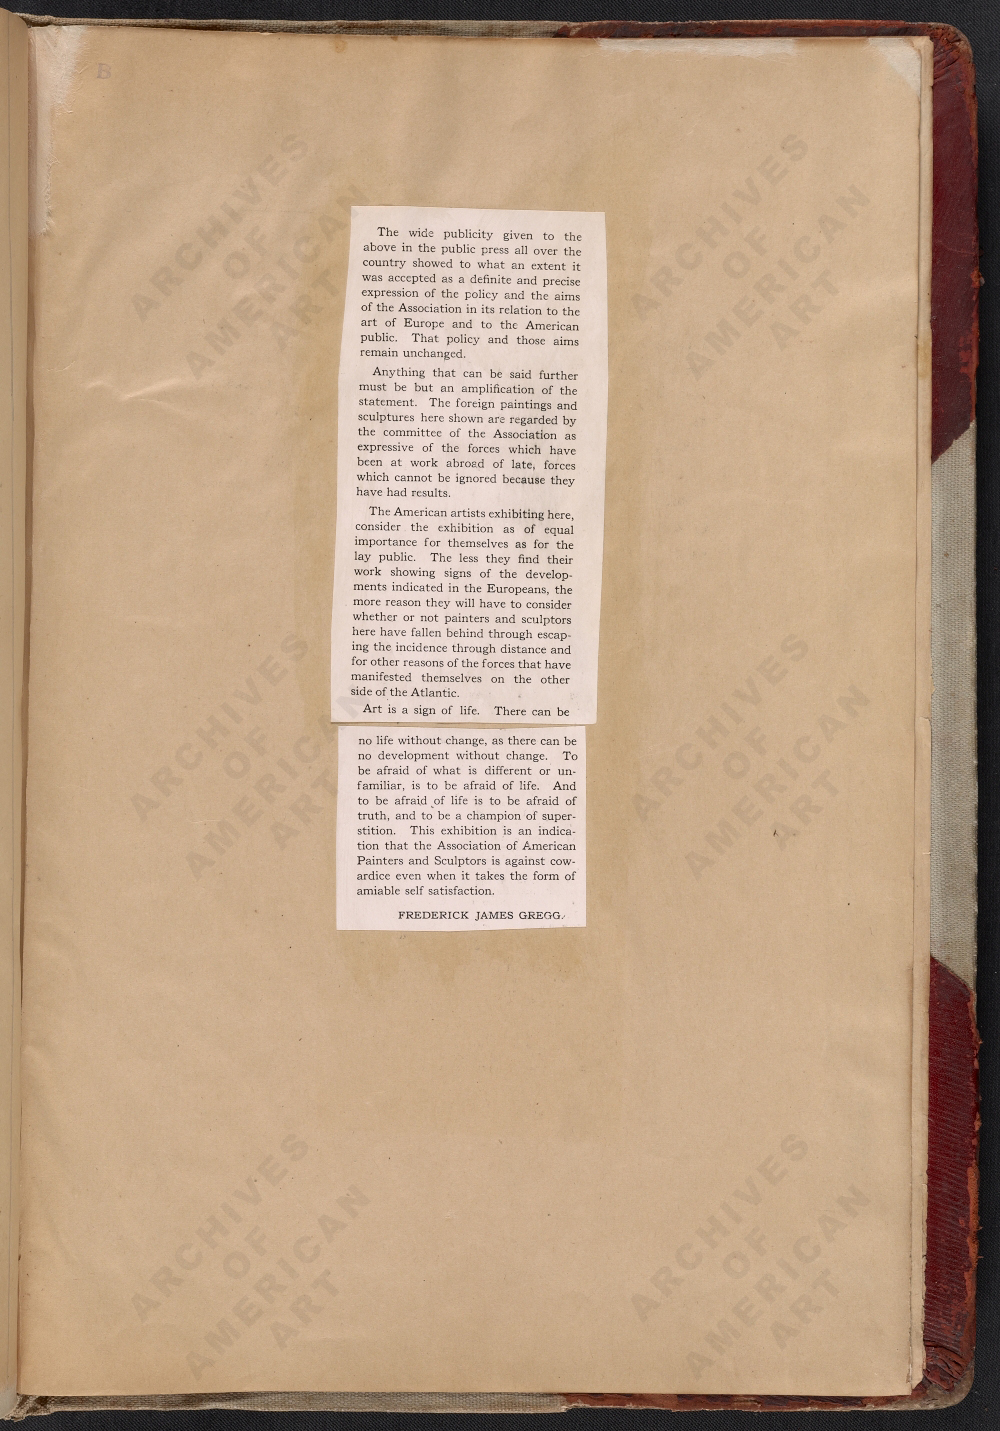 Image for page 185